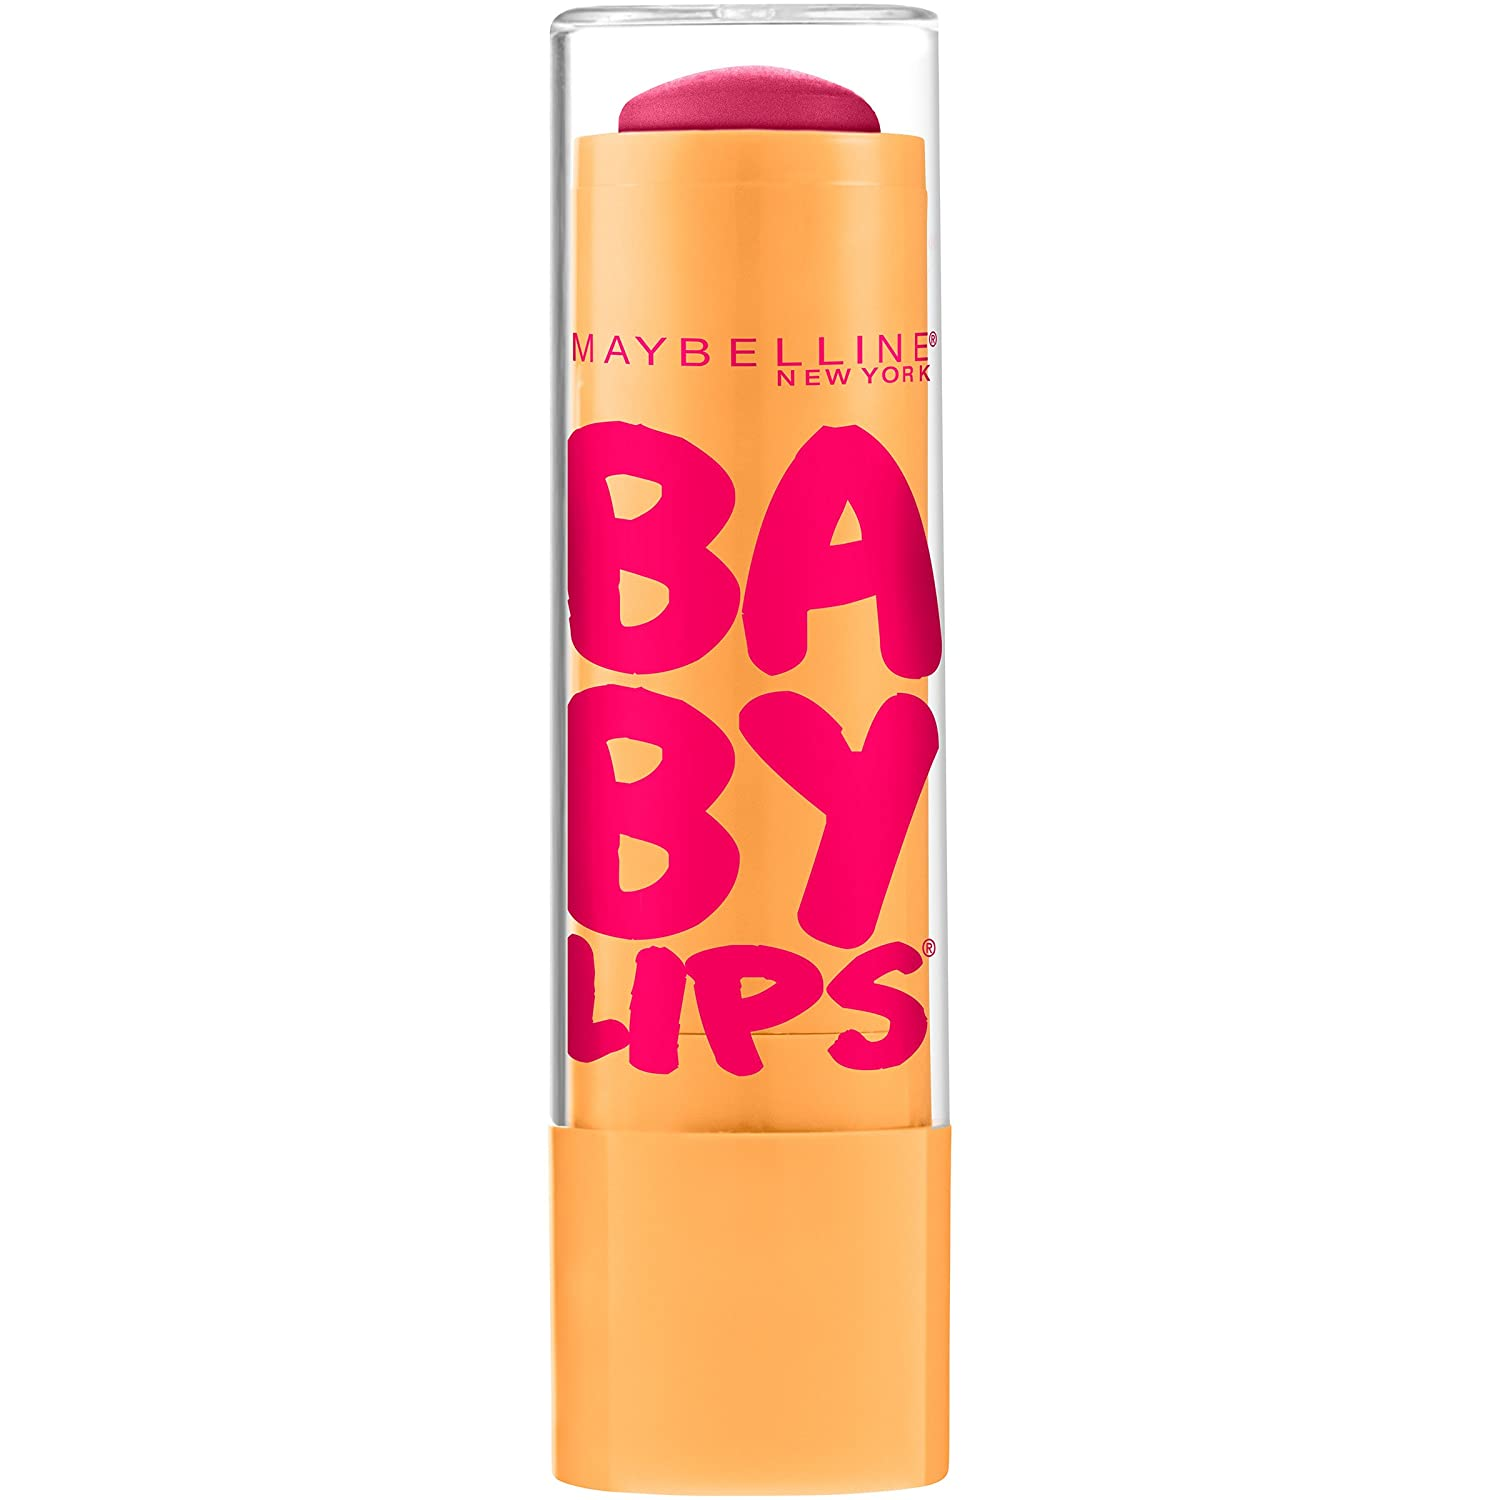 Maybelline New York Baby Lips Moisturizing Lip Balm, Cherry Me, 0.15 Ounce by Maybelline New York K1013801